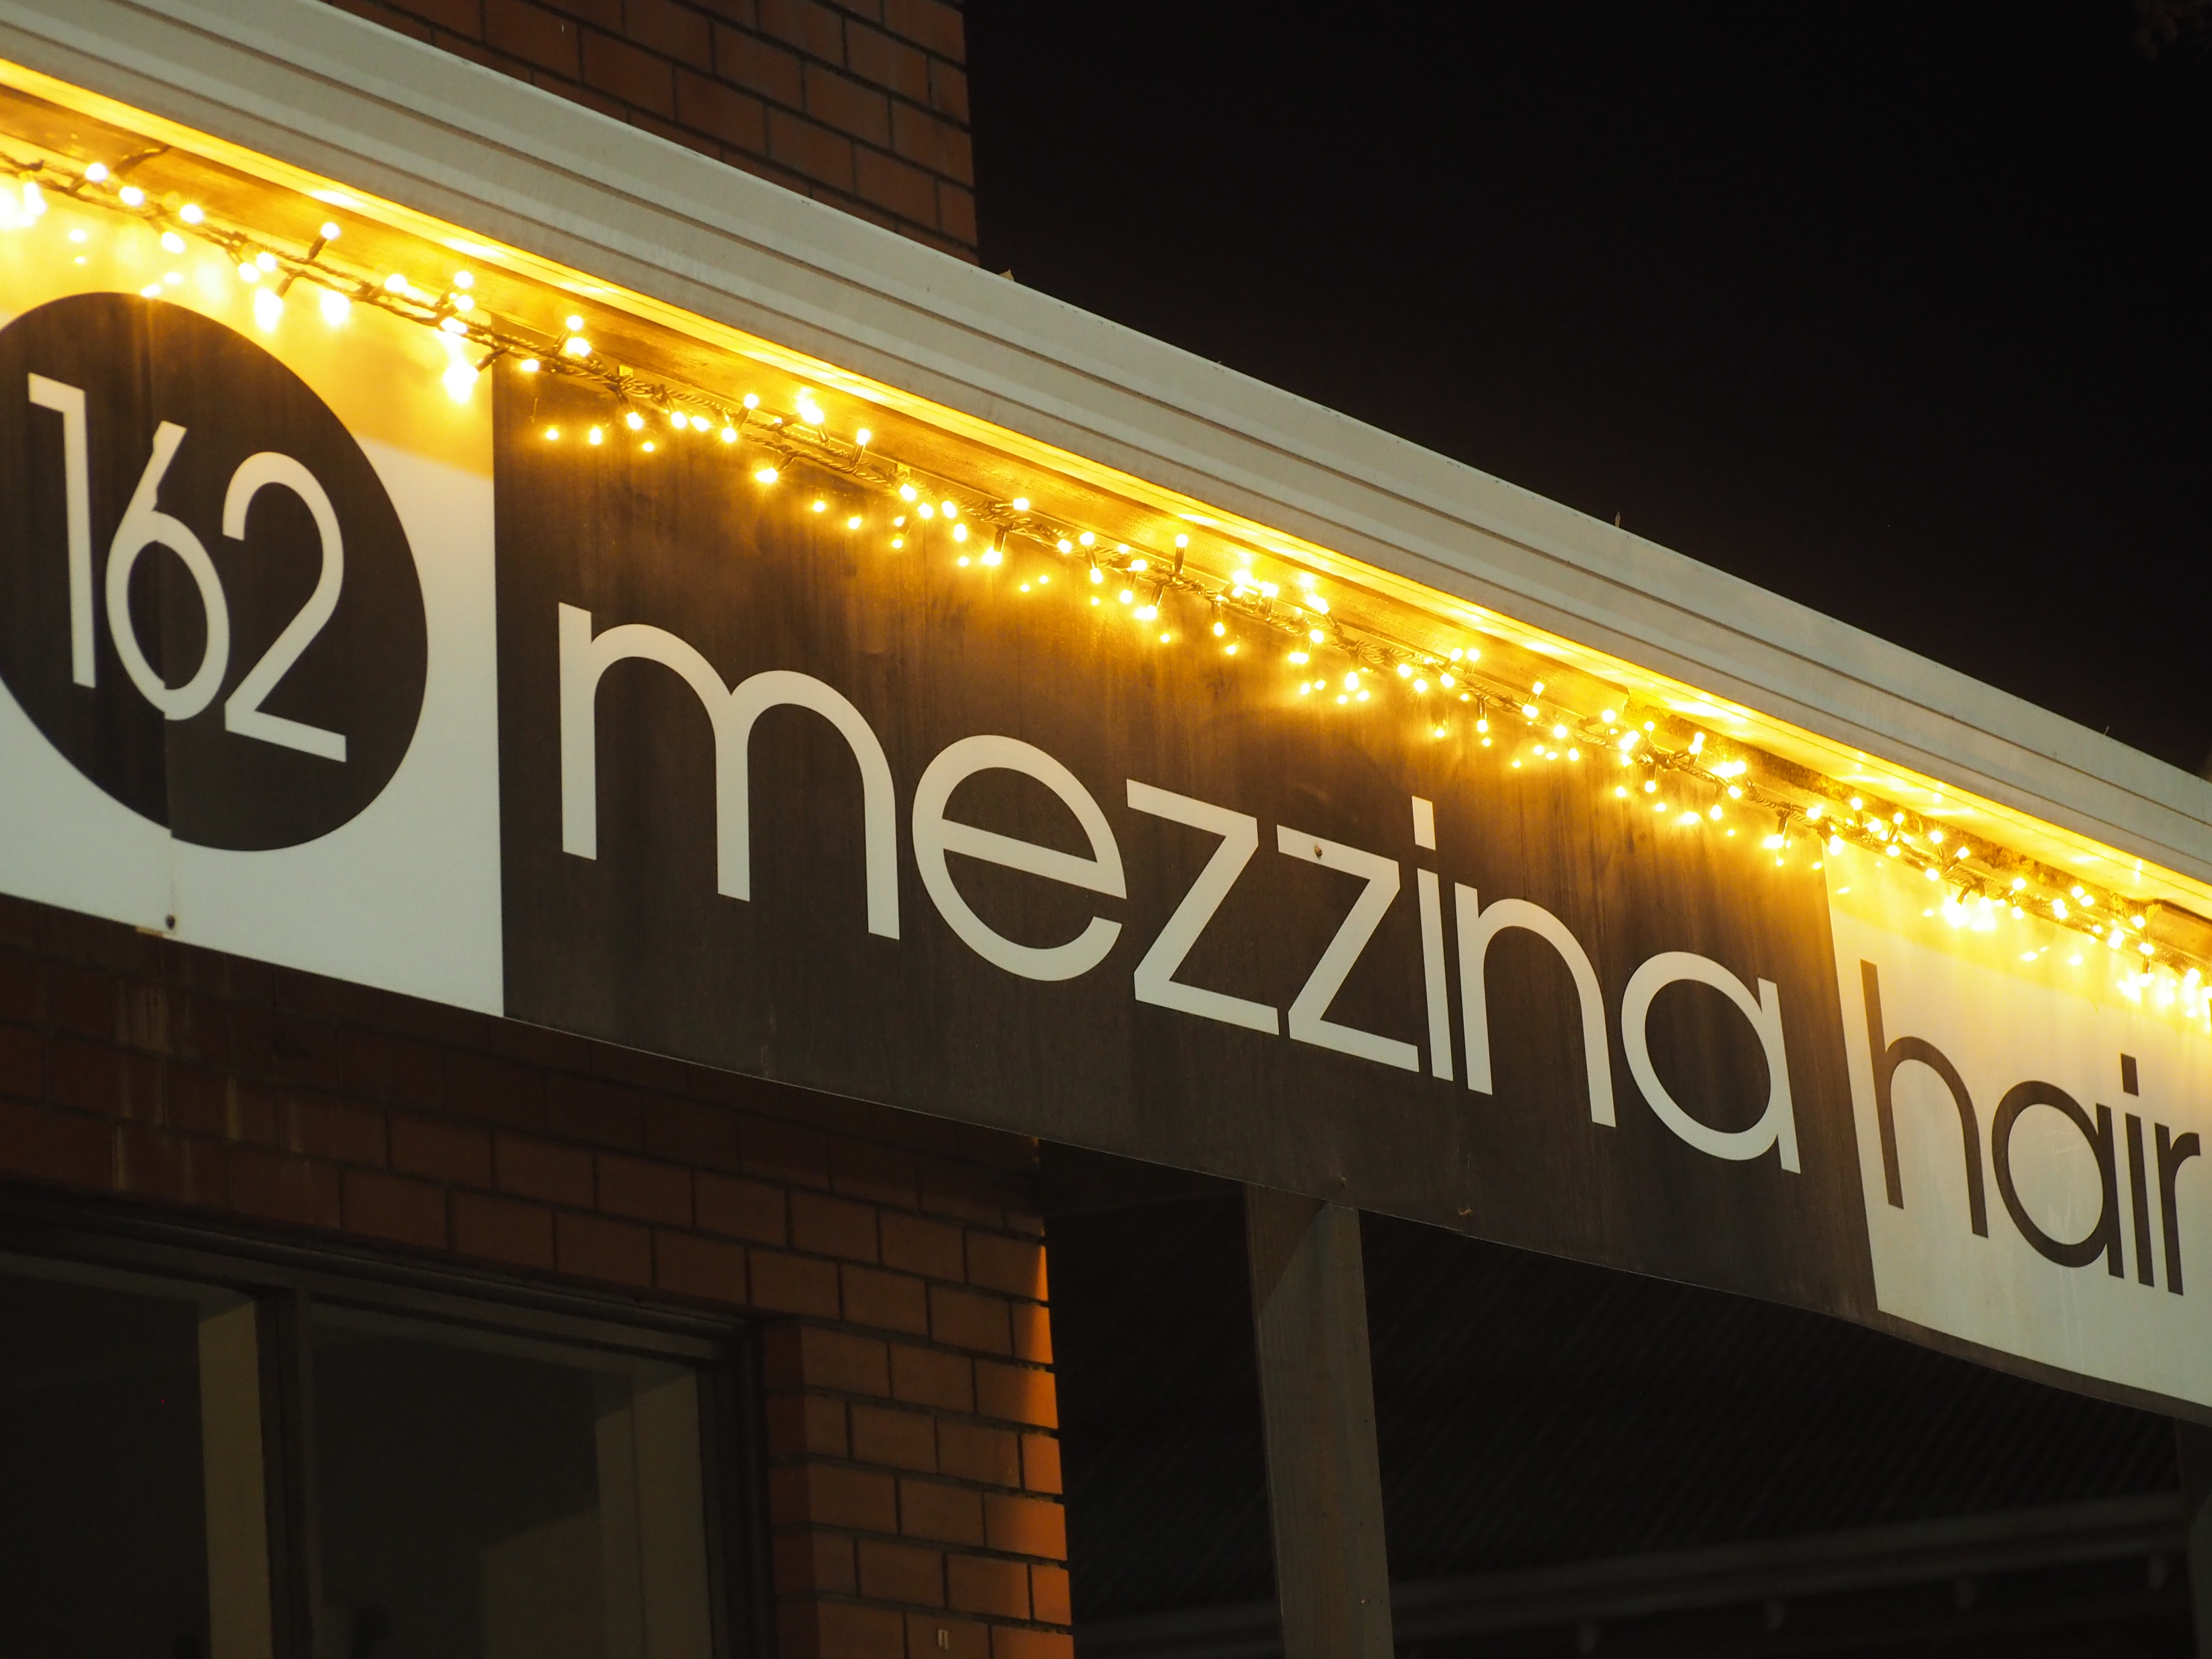 Lights on Mezzina Hair building